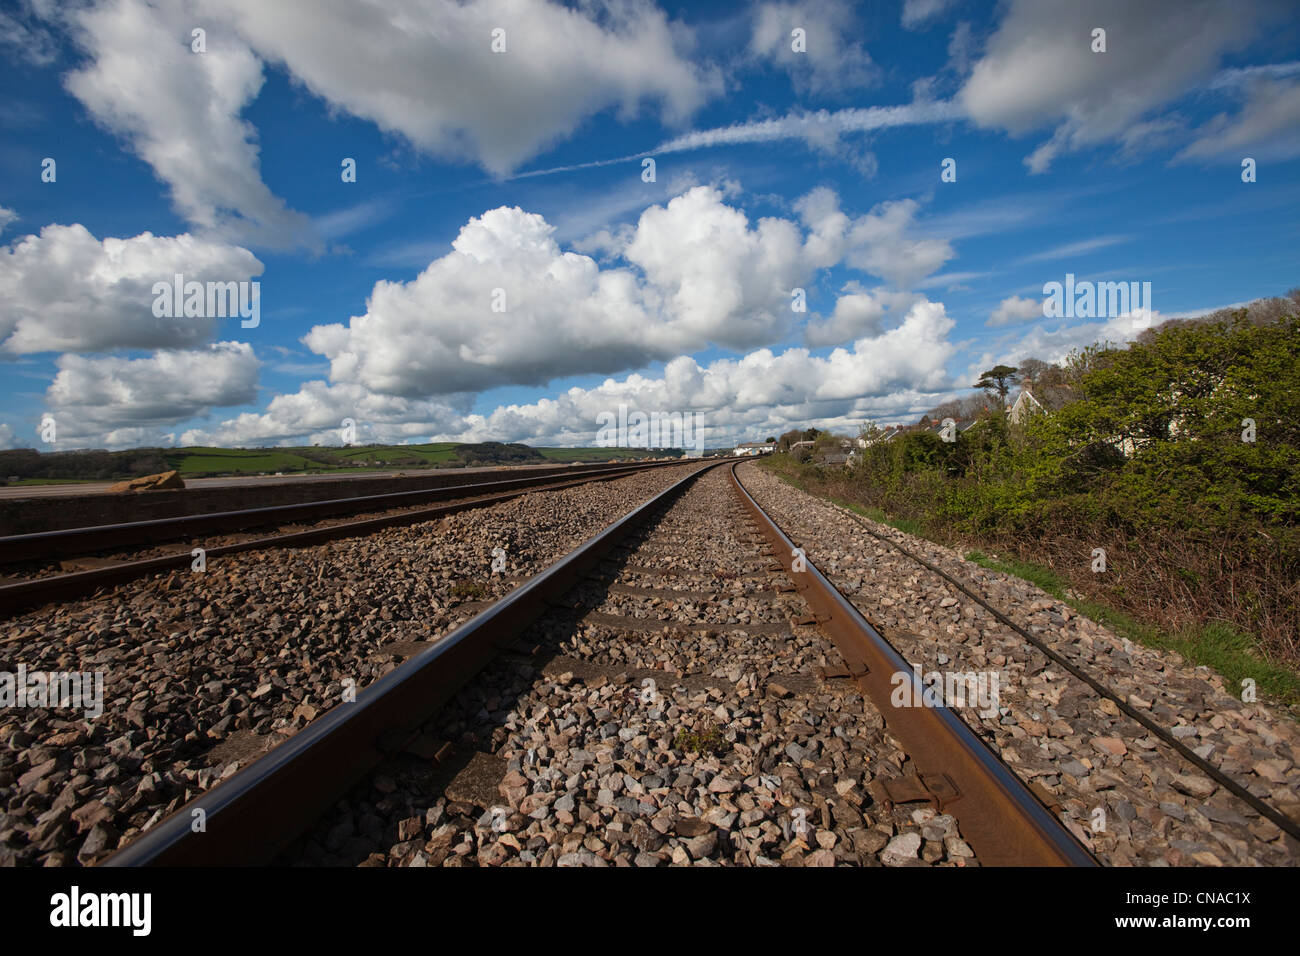 The West Wales train line passing along Ferryside seafront in Carmarthenshire. - Stock Image